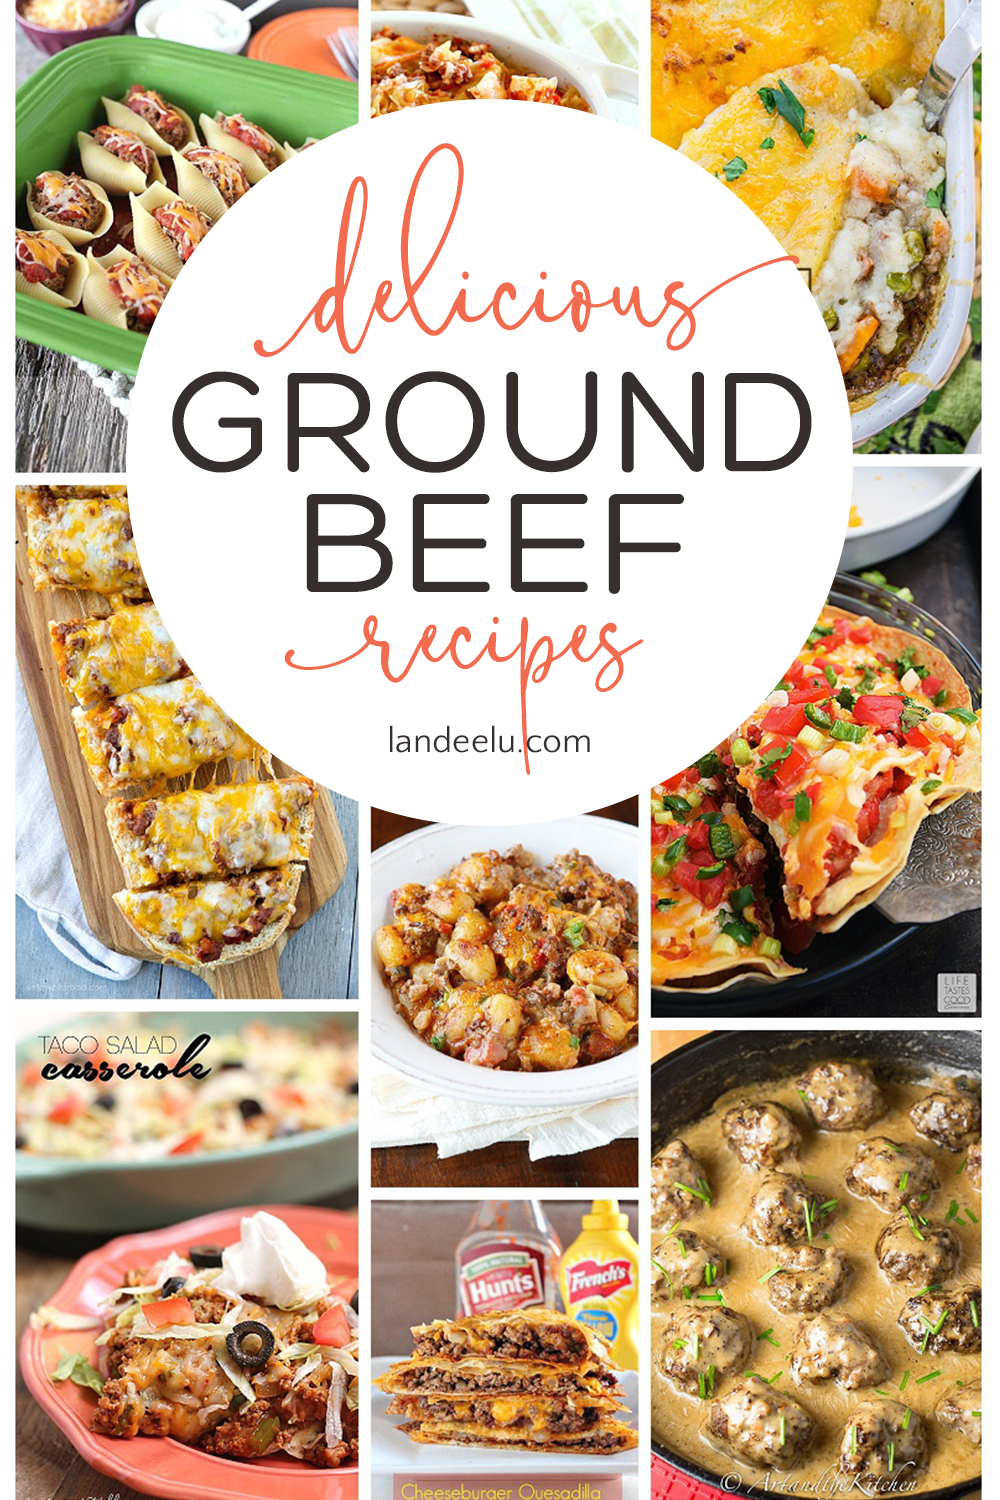 Pull some ground beef out of the freezer and try one of these awesome ground beef recipes tonight! Over 25 delicious meals to make! #recipes #familydinner #dinnerrecipes #groundbeefrecipes